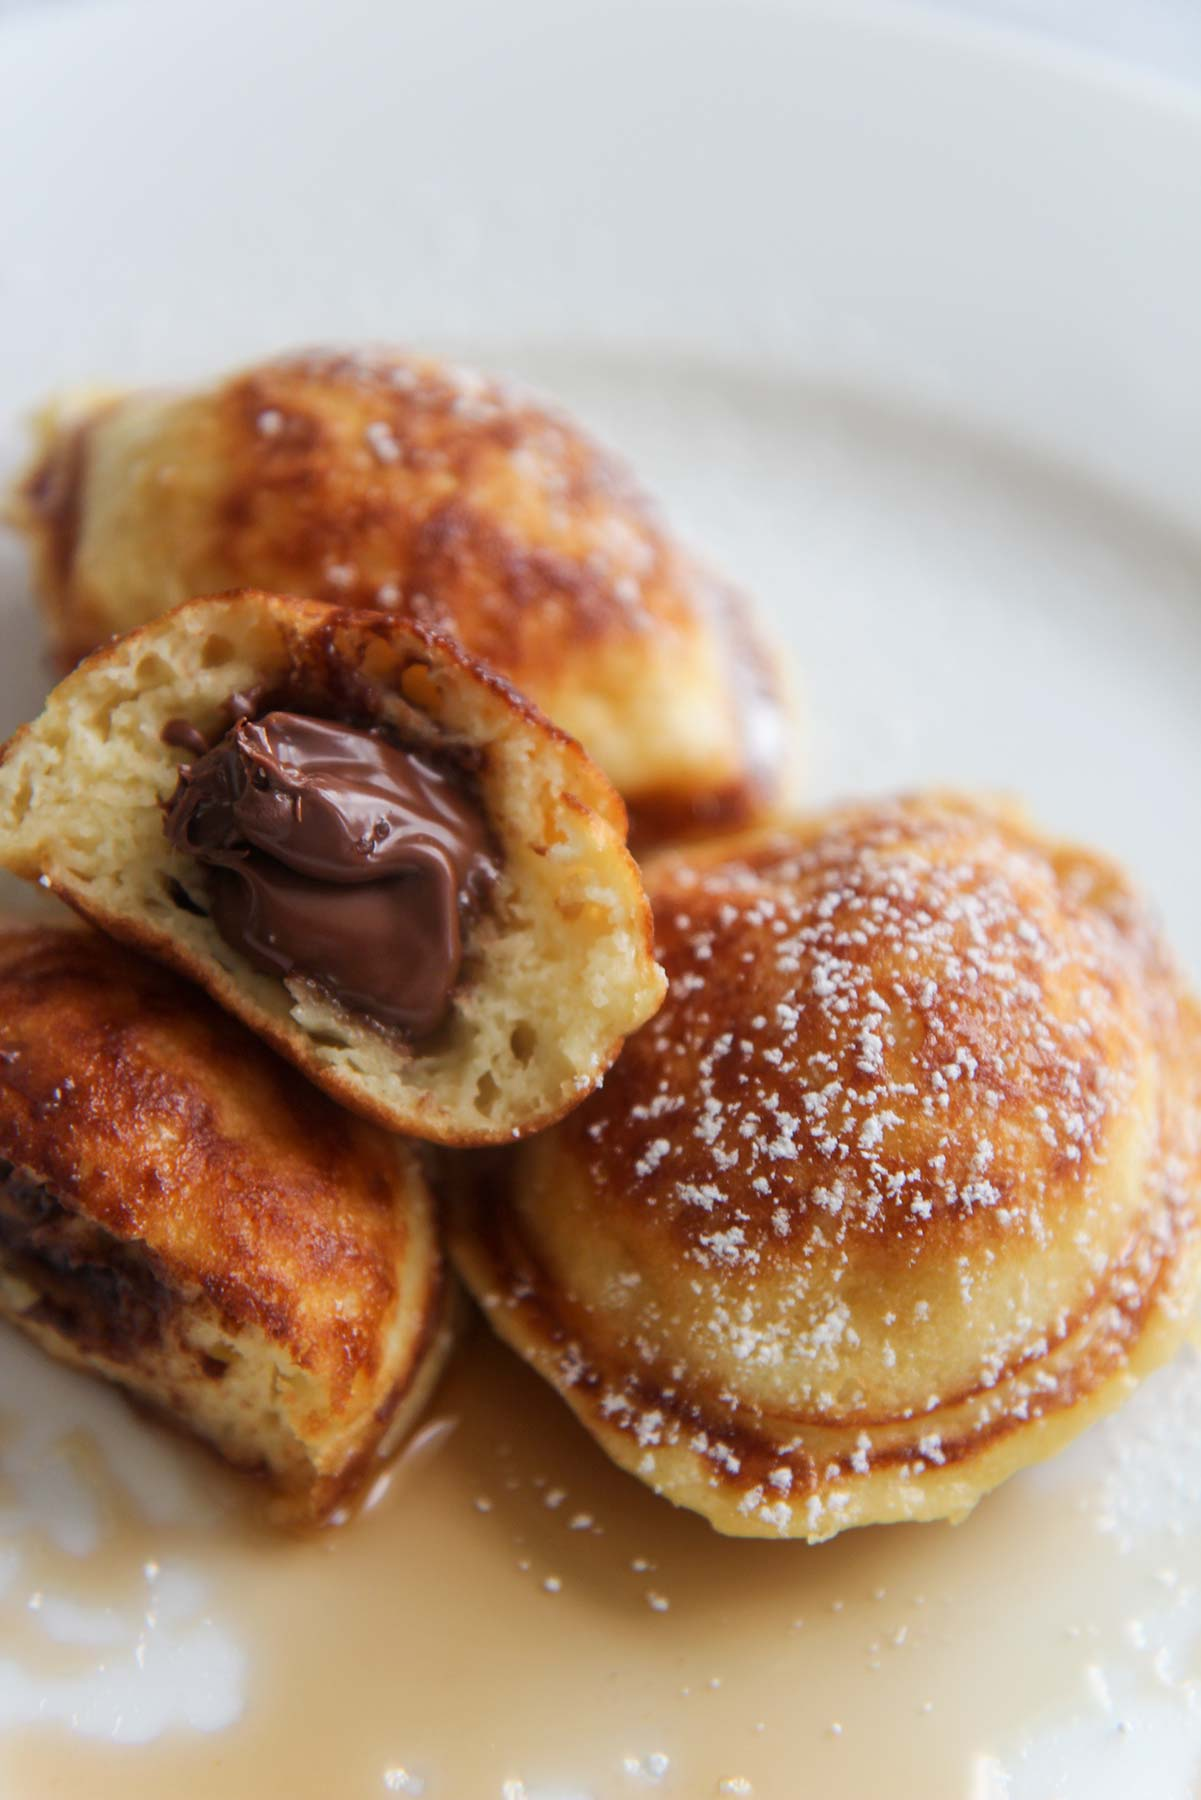 Nutella stuffed pancakes up close with powdered sugar on top.